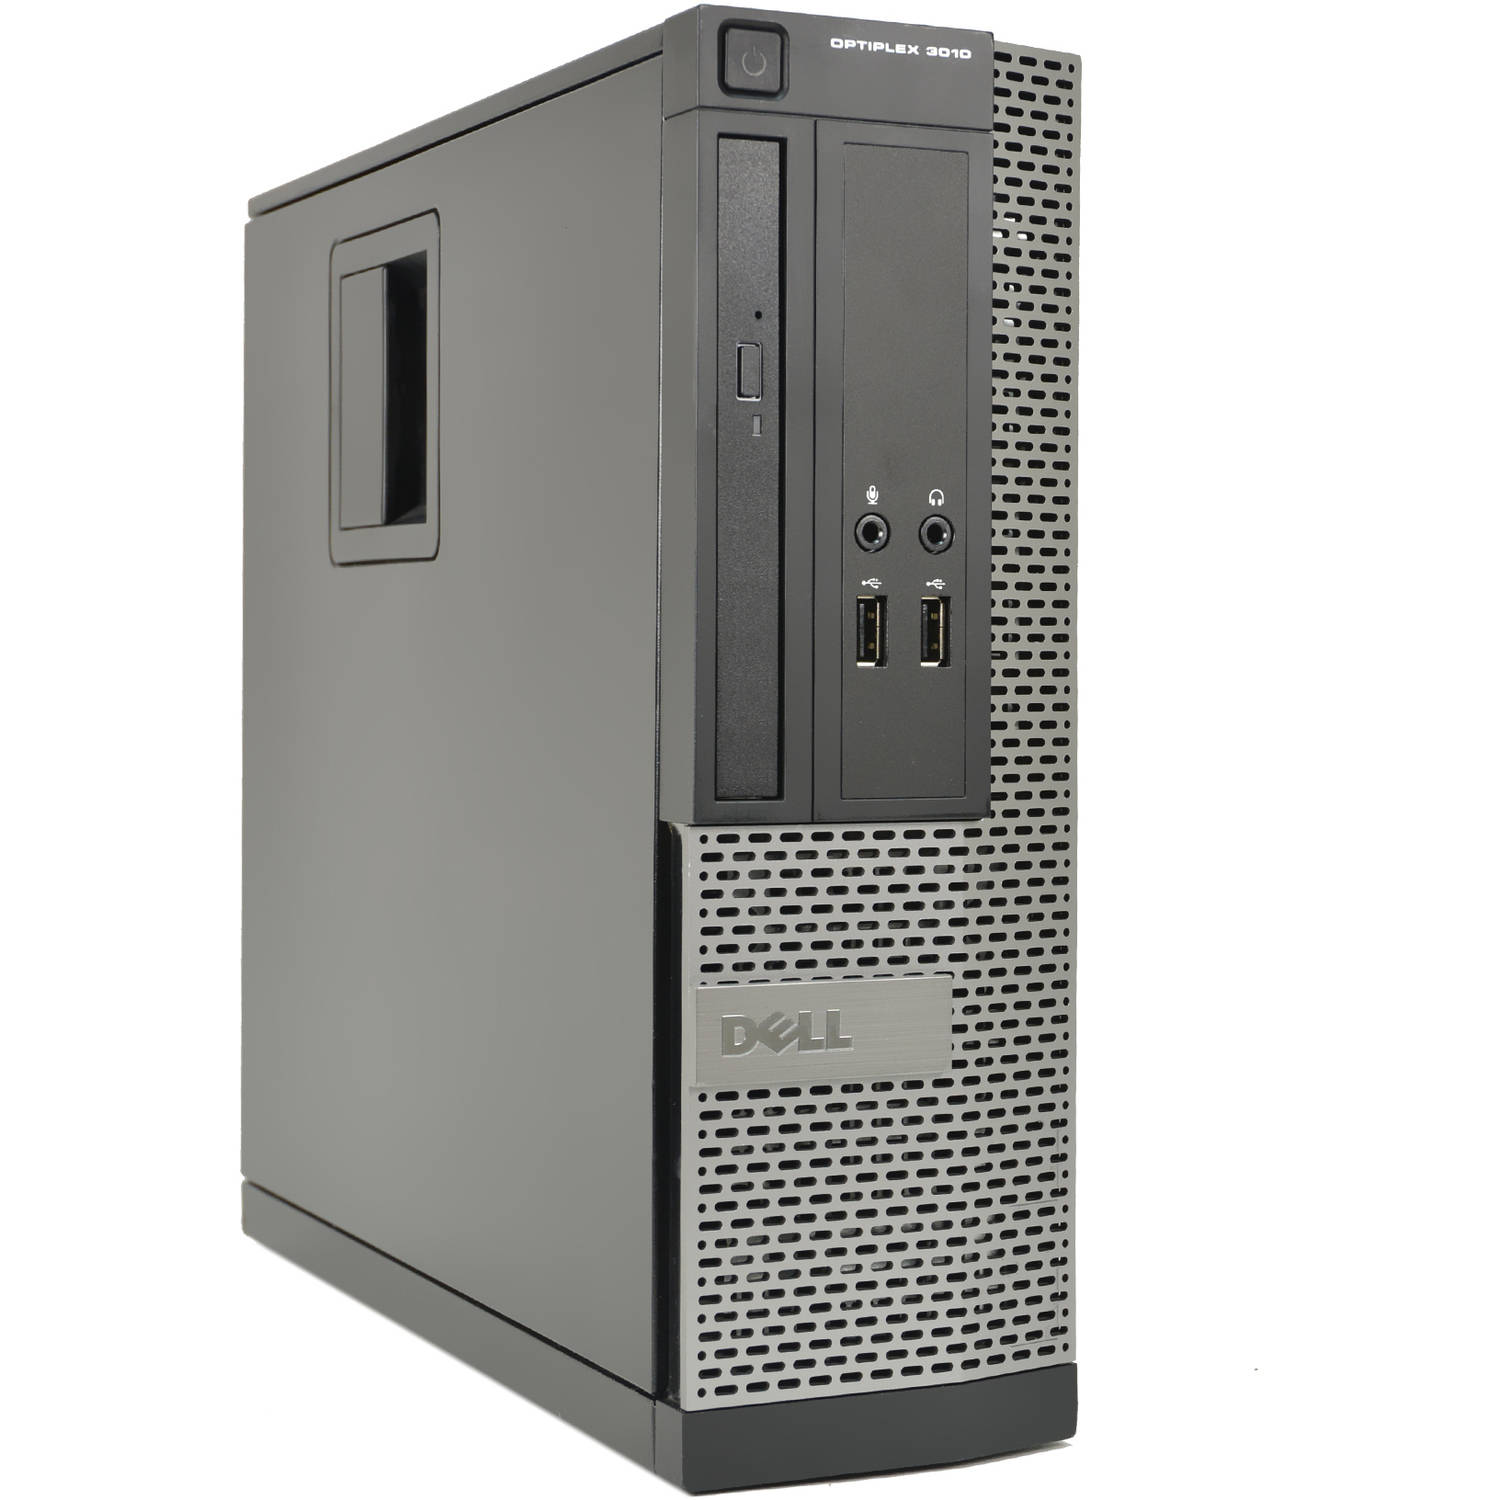 Refurbished Dell OptiPlex 3010-SFF Desktop PC with Intel Core i3-3220 Processor, 4GB Memory, 250GB Hard Drive and Windows 10 Pro (Monitor Not Included)